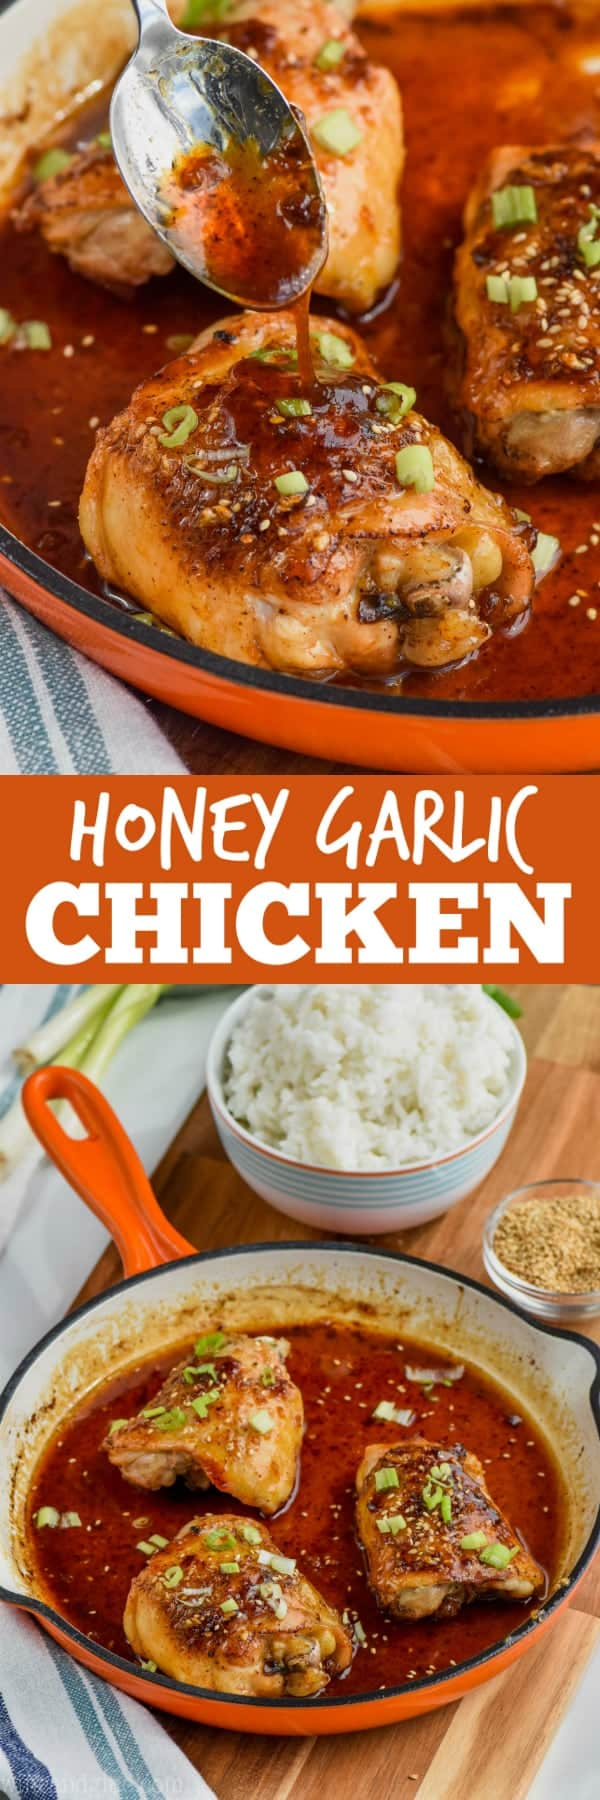 spooning honey garlic sauce over baked chicken thighs in a pan